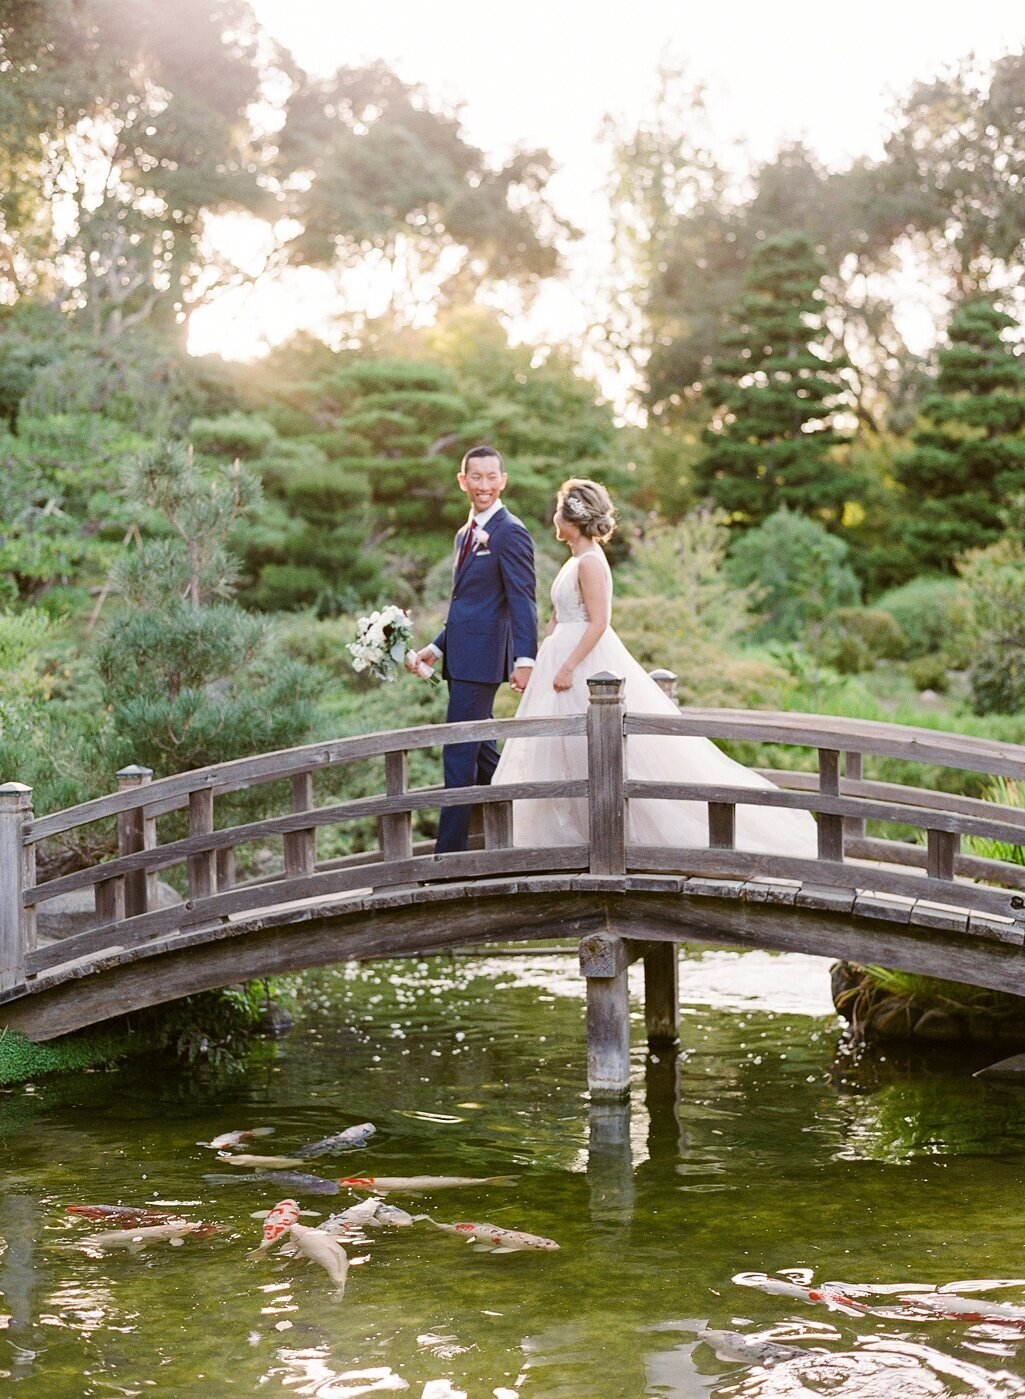 Jessie-Barksdale-Photography_Hakone-Gardens-Saratoga_San-Francisco-Bay-Area-Wedding-Photographer_0039